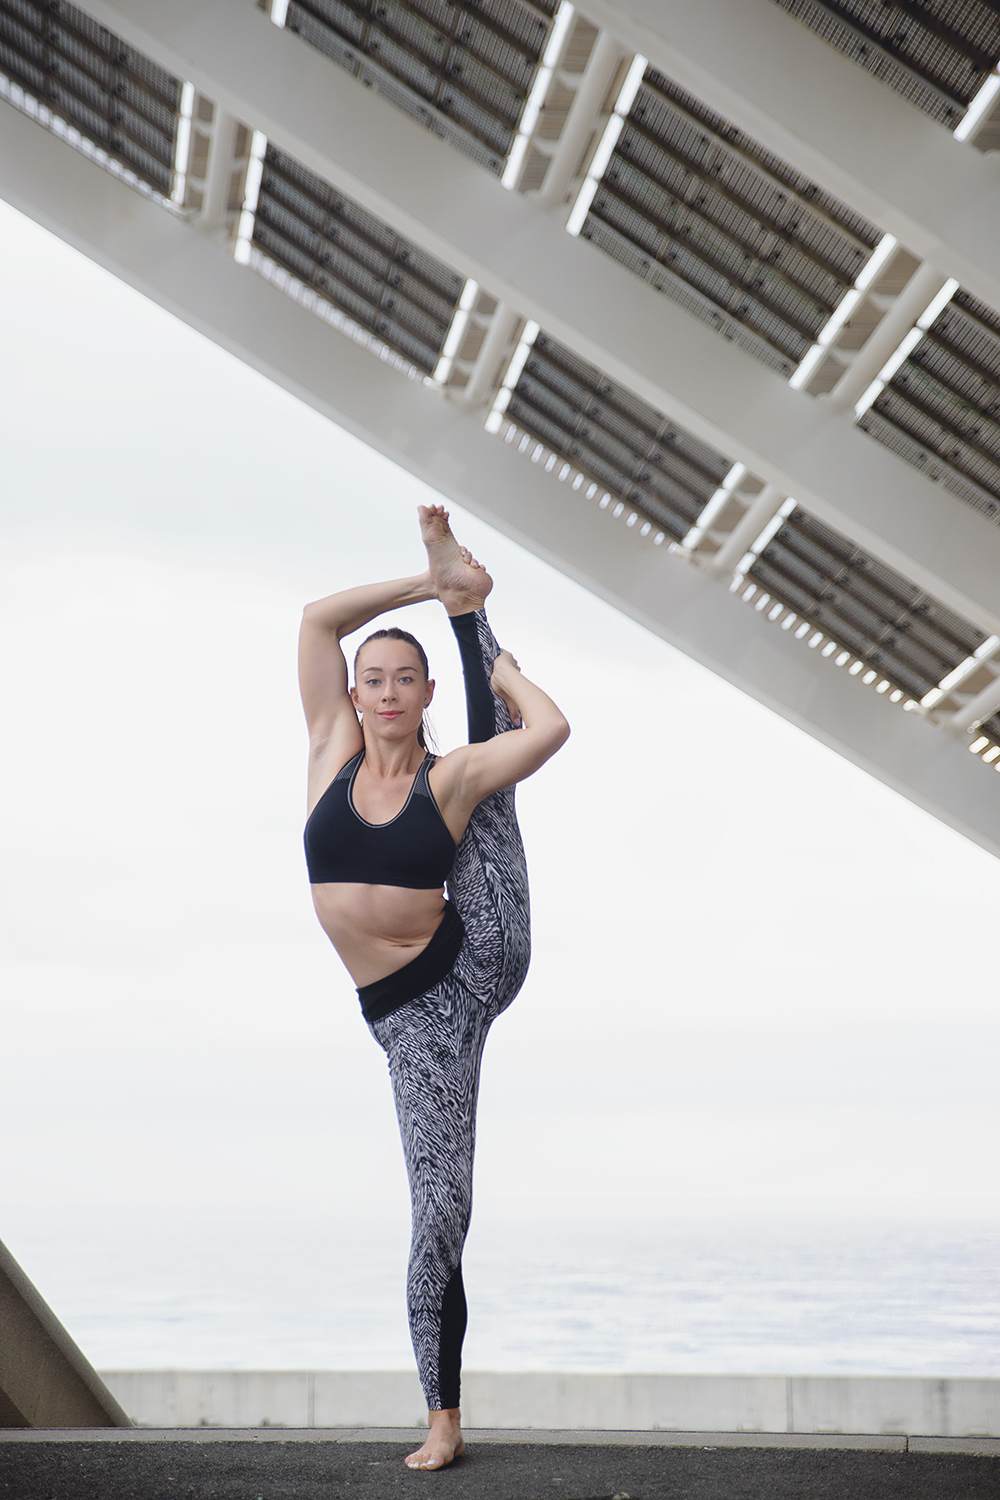 Alyona Yoga teacher in Barcelona